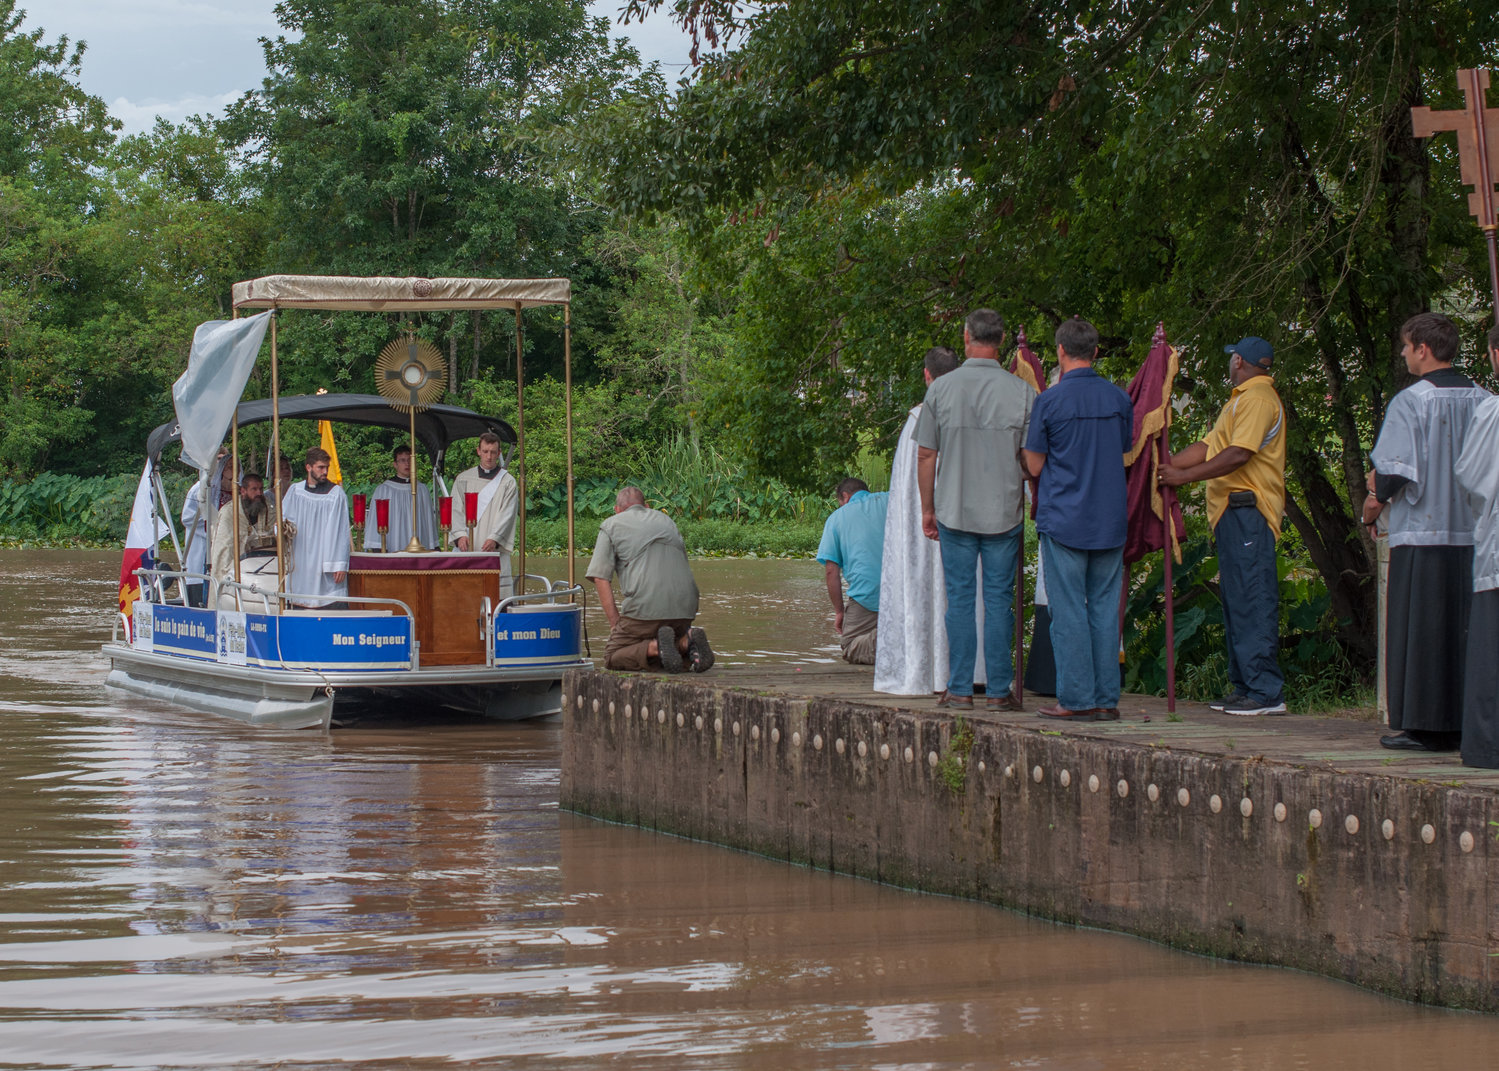 A priest, members of the Knights of Columbus and lay Catholics greet an arriving boat with altar servers during the Aug. 15, 2017, Fete-Dieu du Teche procession in Arnoldville, La. The Lafayette Diocese will hold its annual 38-mile eucharistic boat procession Aug. 15, 2019, celebrating the feast of the Assumption and 254th anniversary of arrival of French-Canadian immigrants who brought the Catholic faith to Acadiana.